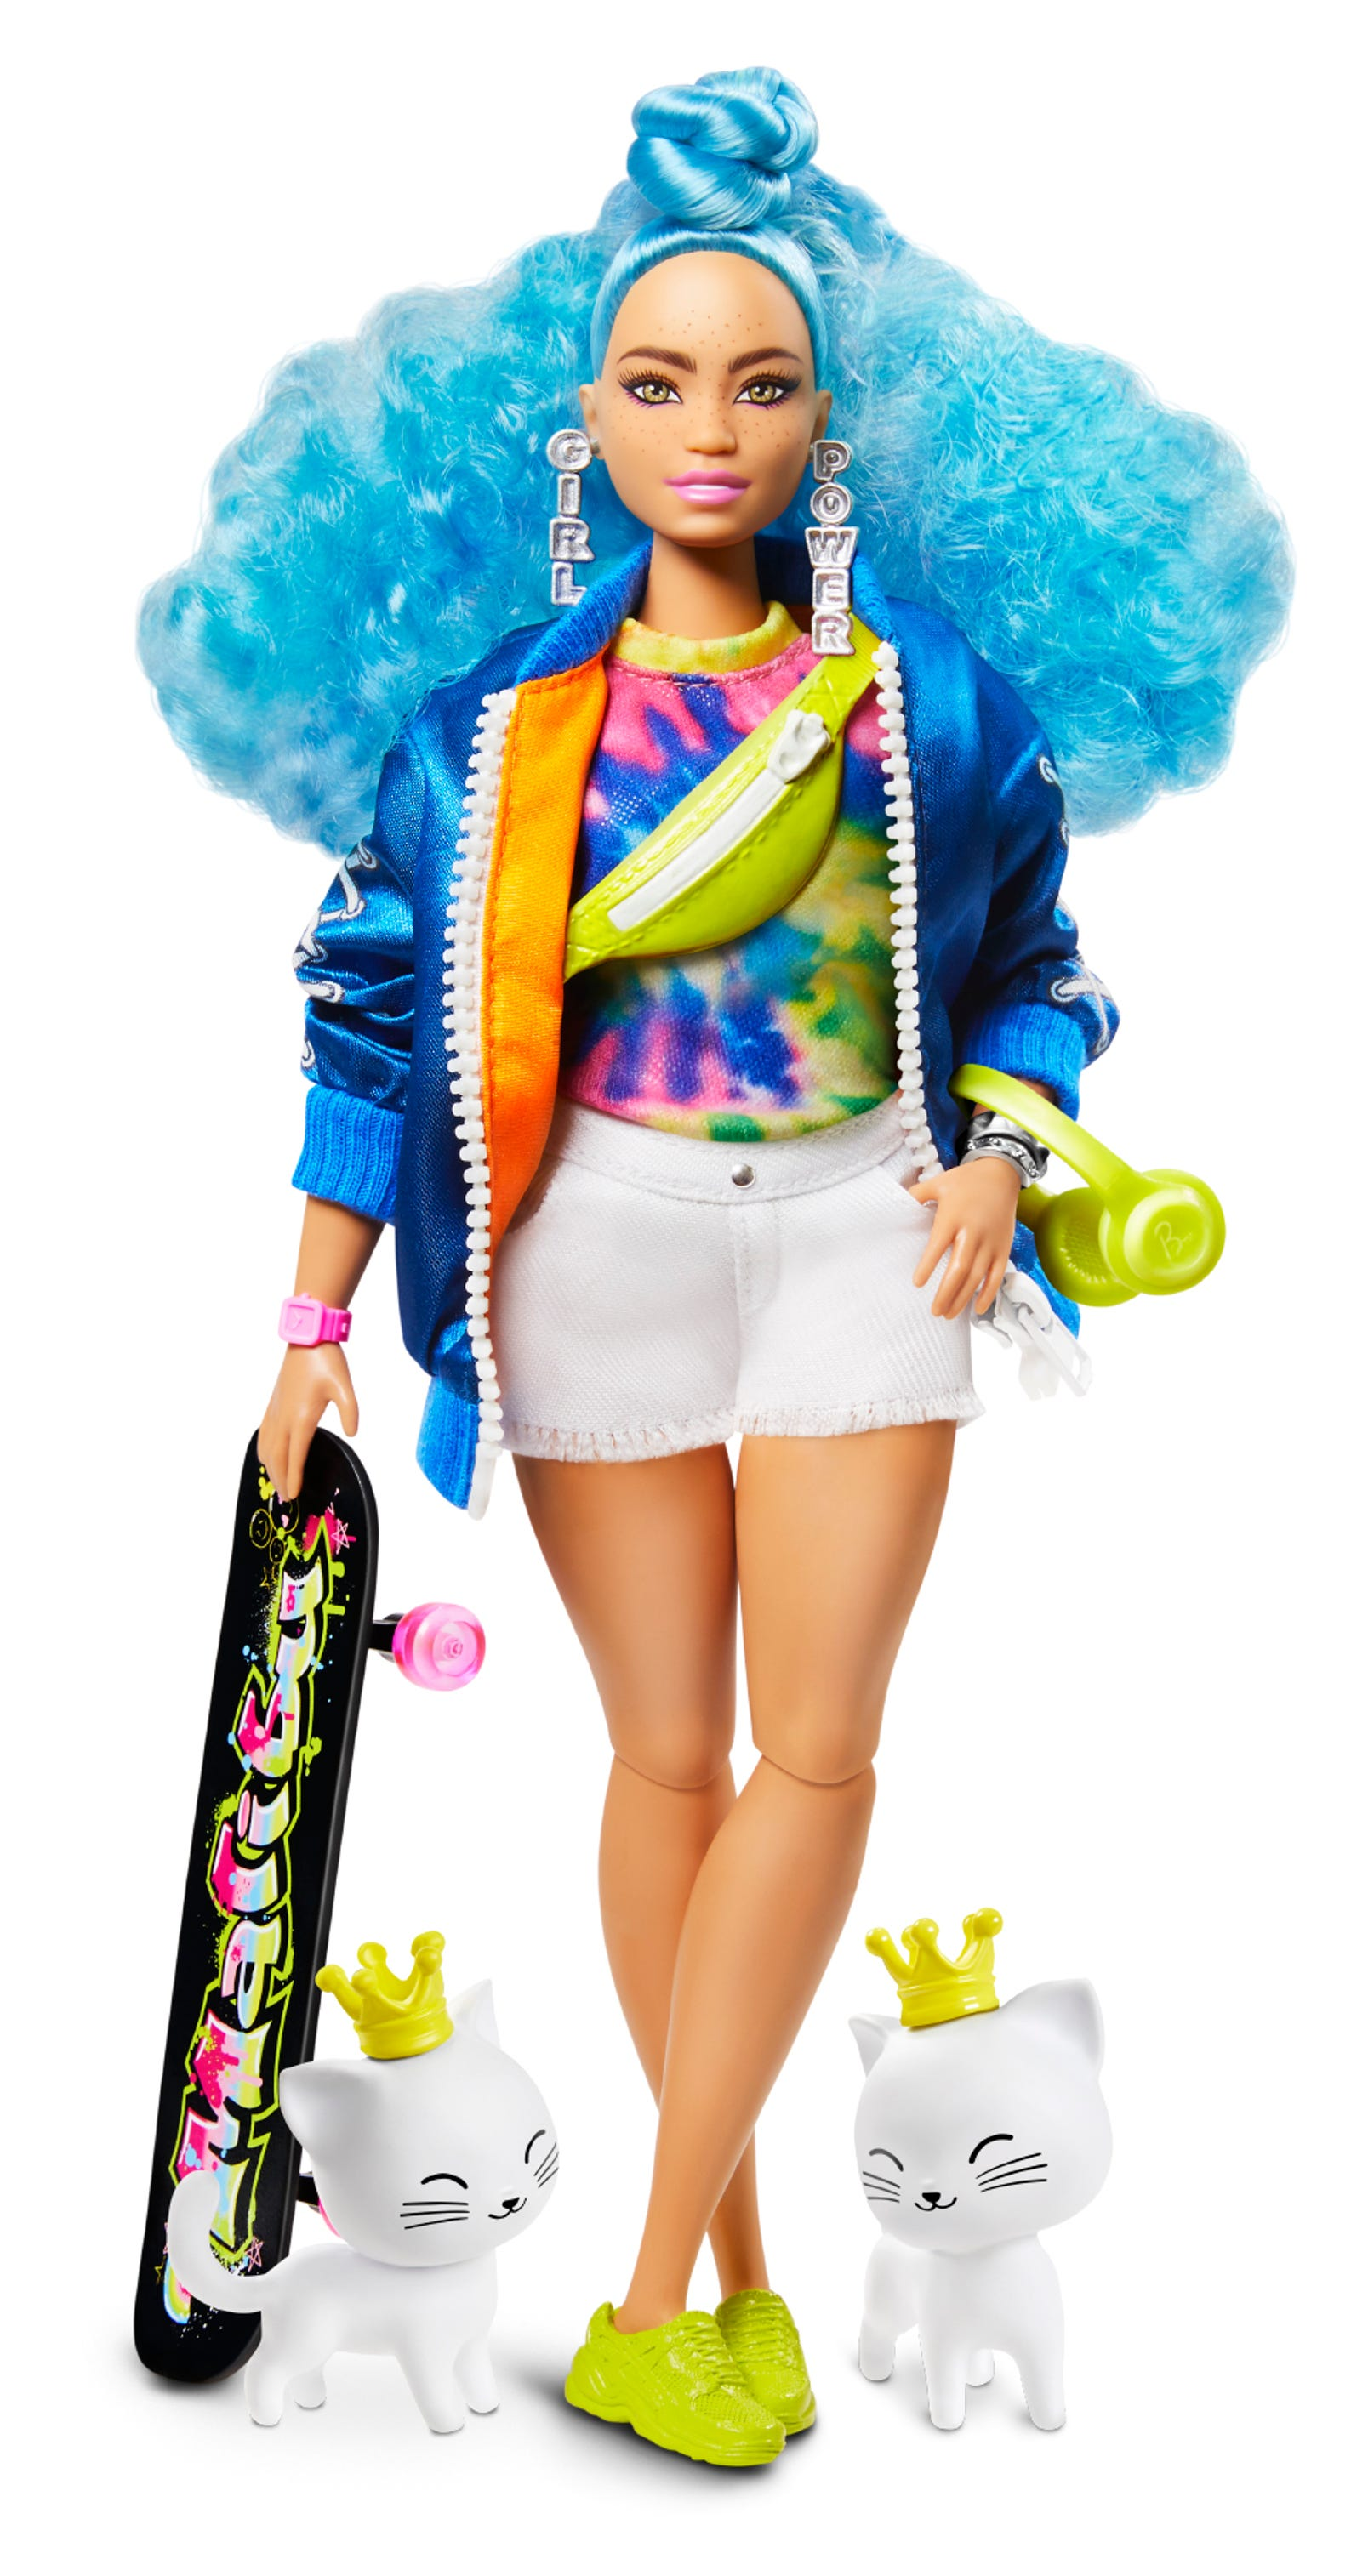 Mattel describes this Barbie Extra doll with bright blue hair as curvy. She wears a tie-dye shirt with a sateen bomber jacket, white denim shorts and neon sneakers. Her pet twin kittens wear tiaras.